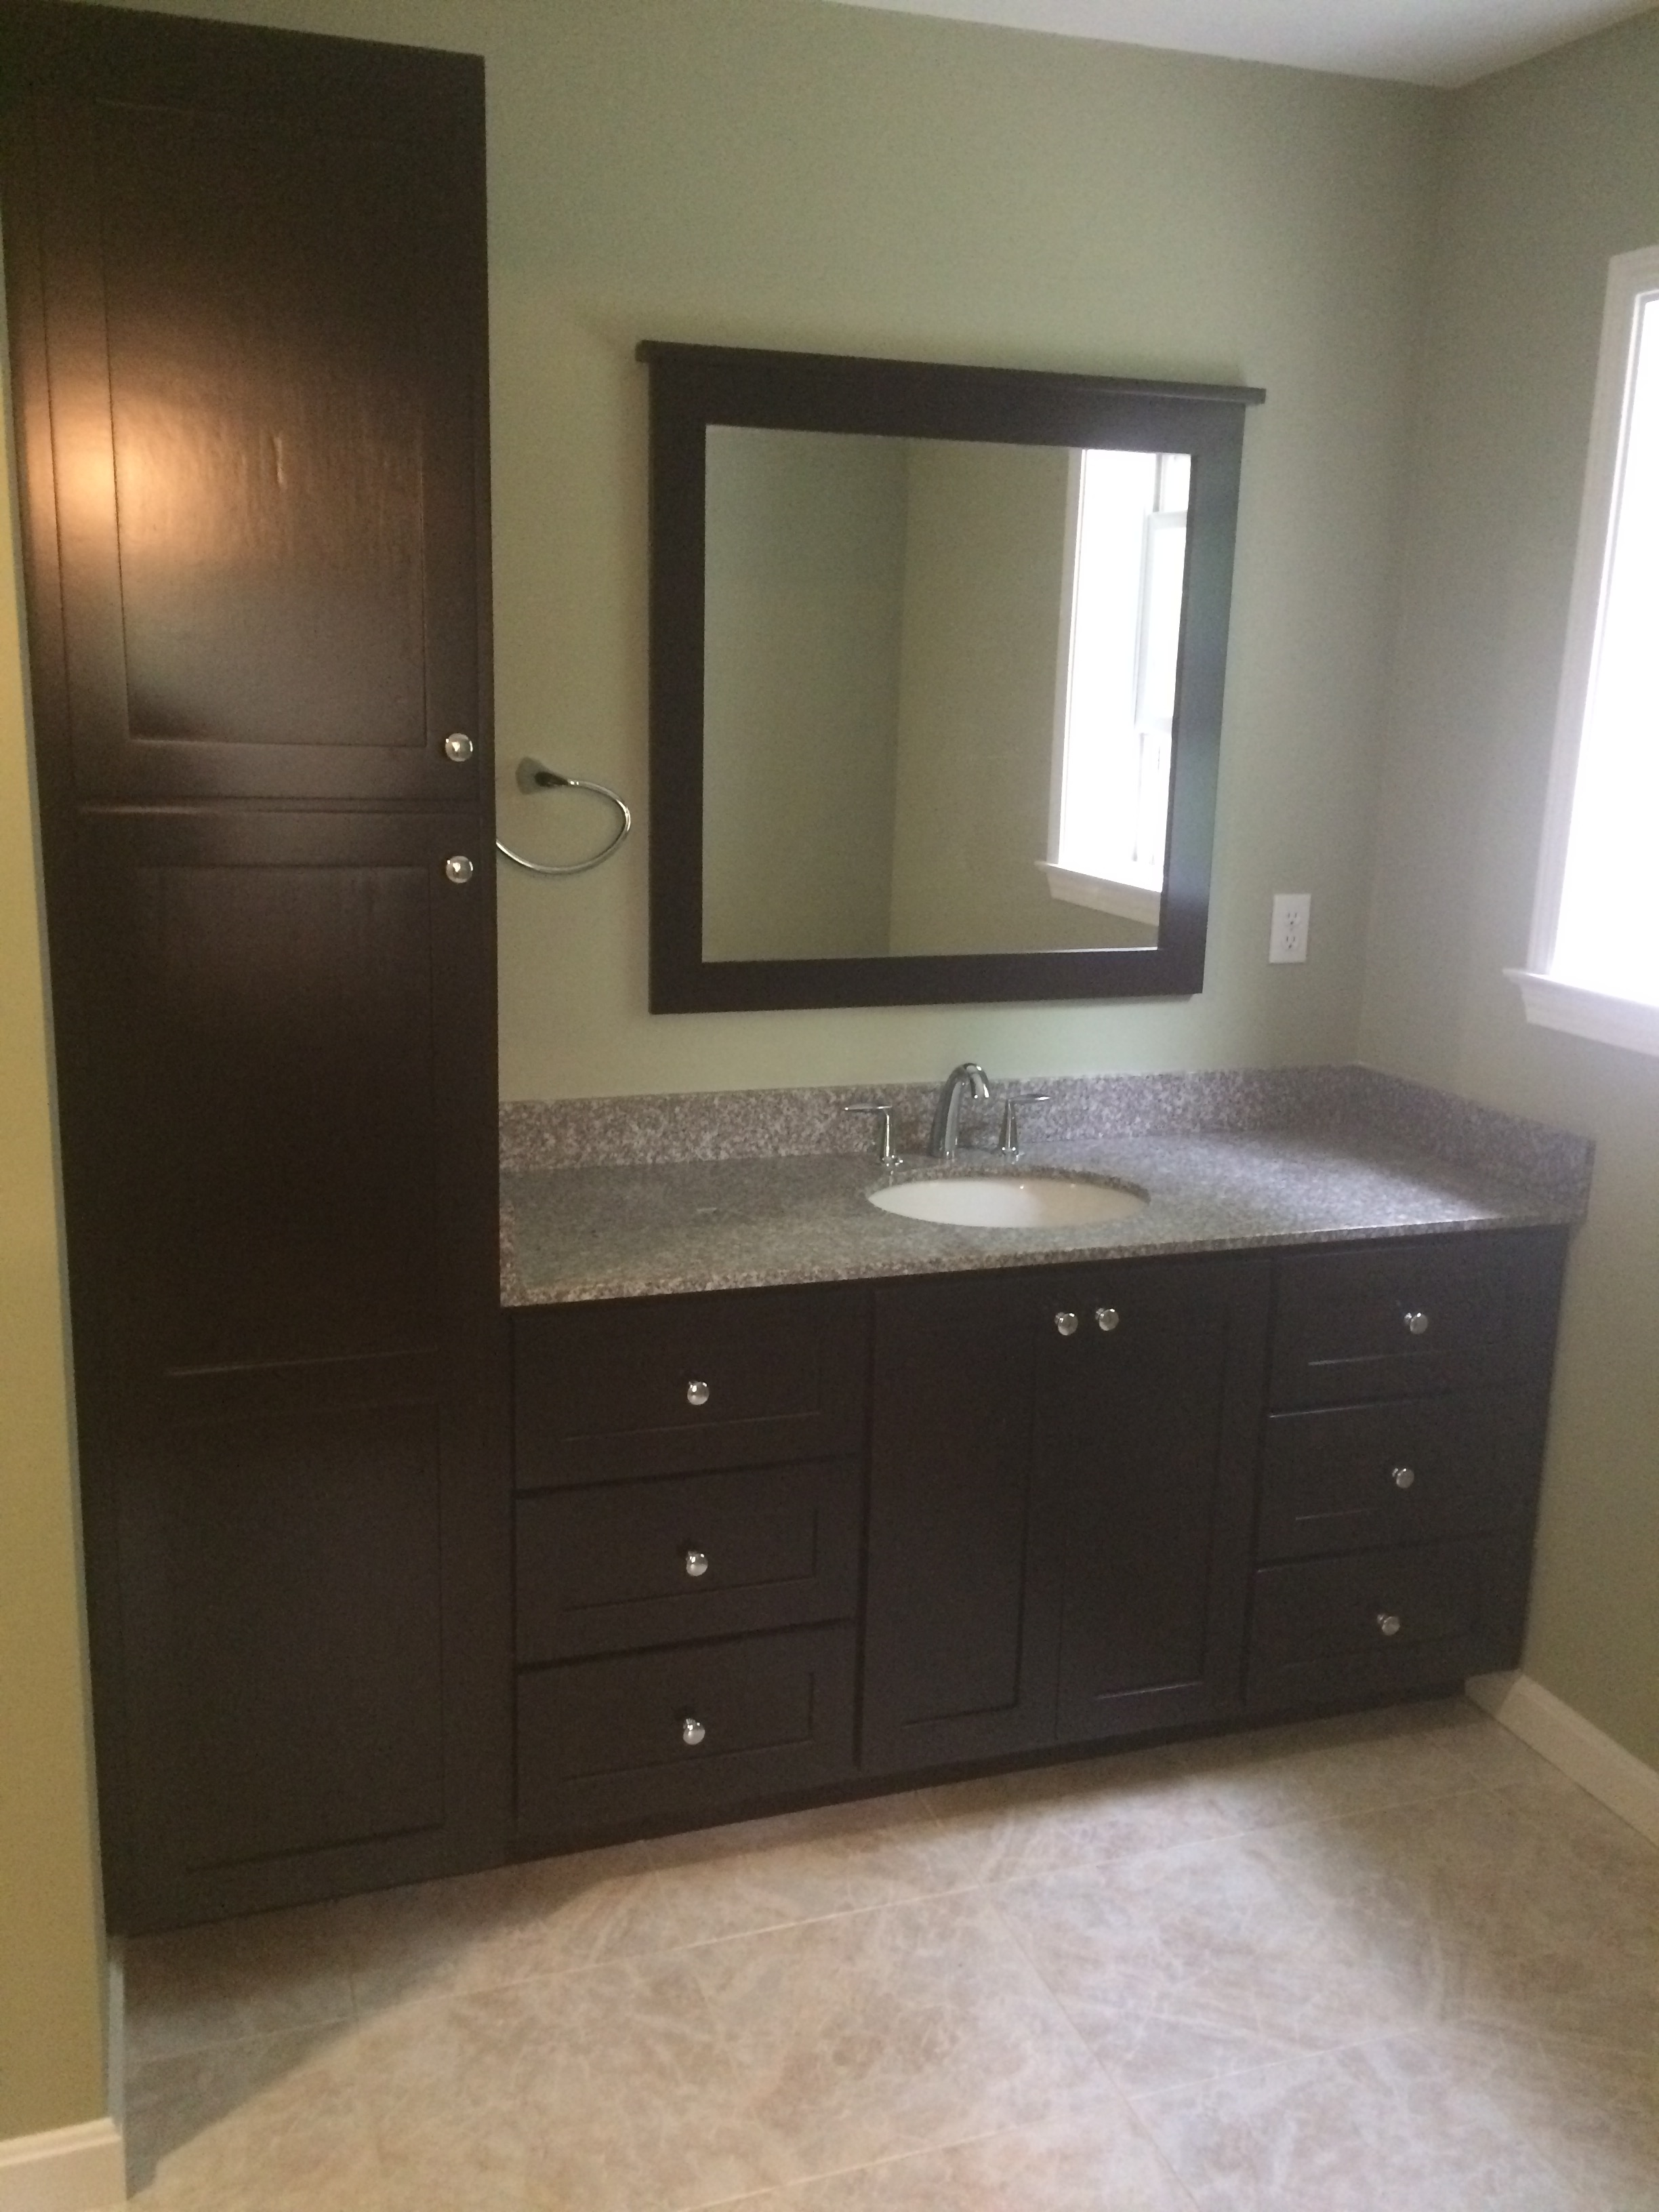 Recent bathroom remodels nh bath builders part 3 for Bath remodel nh